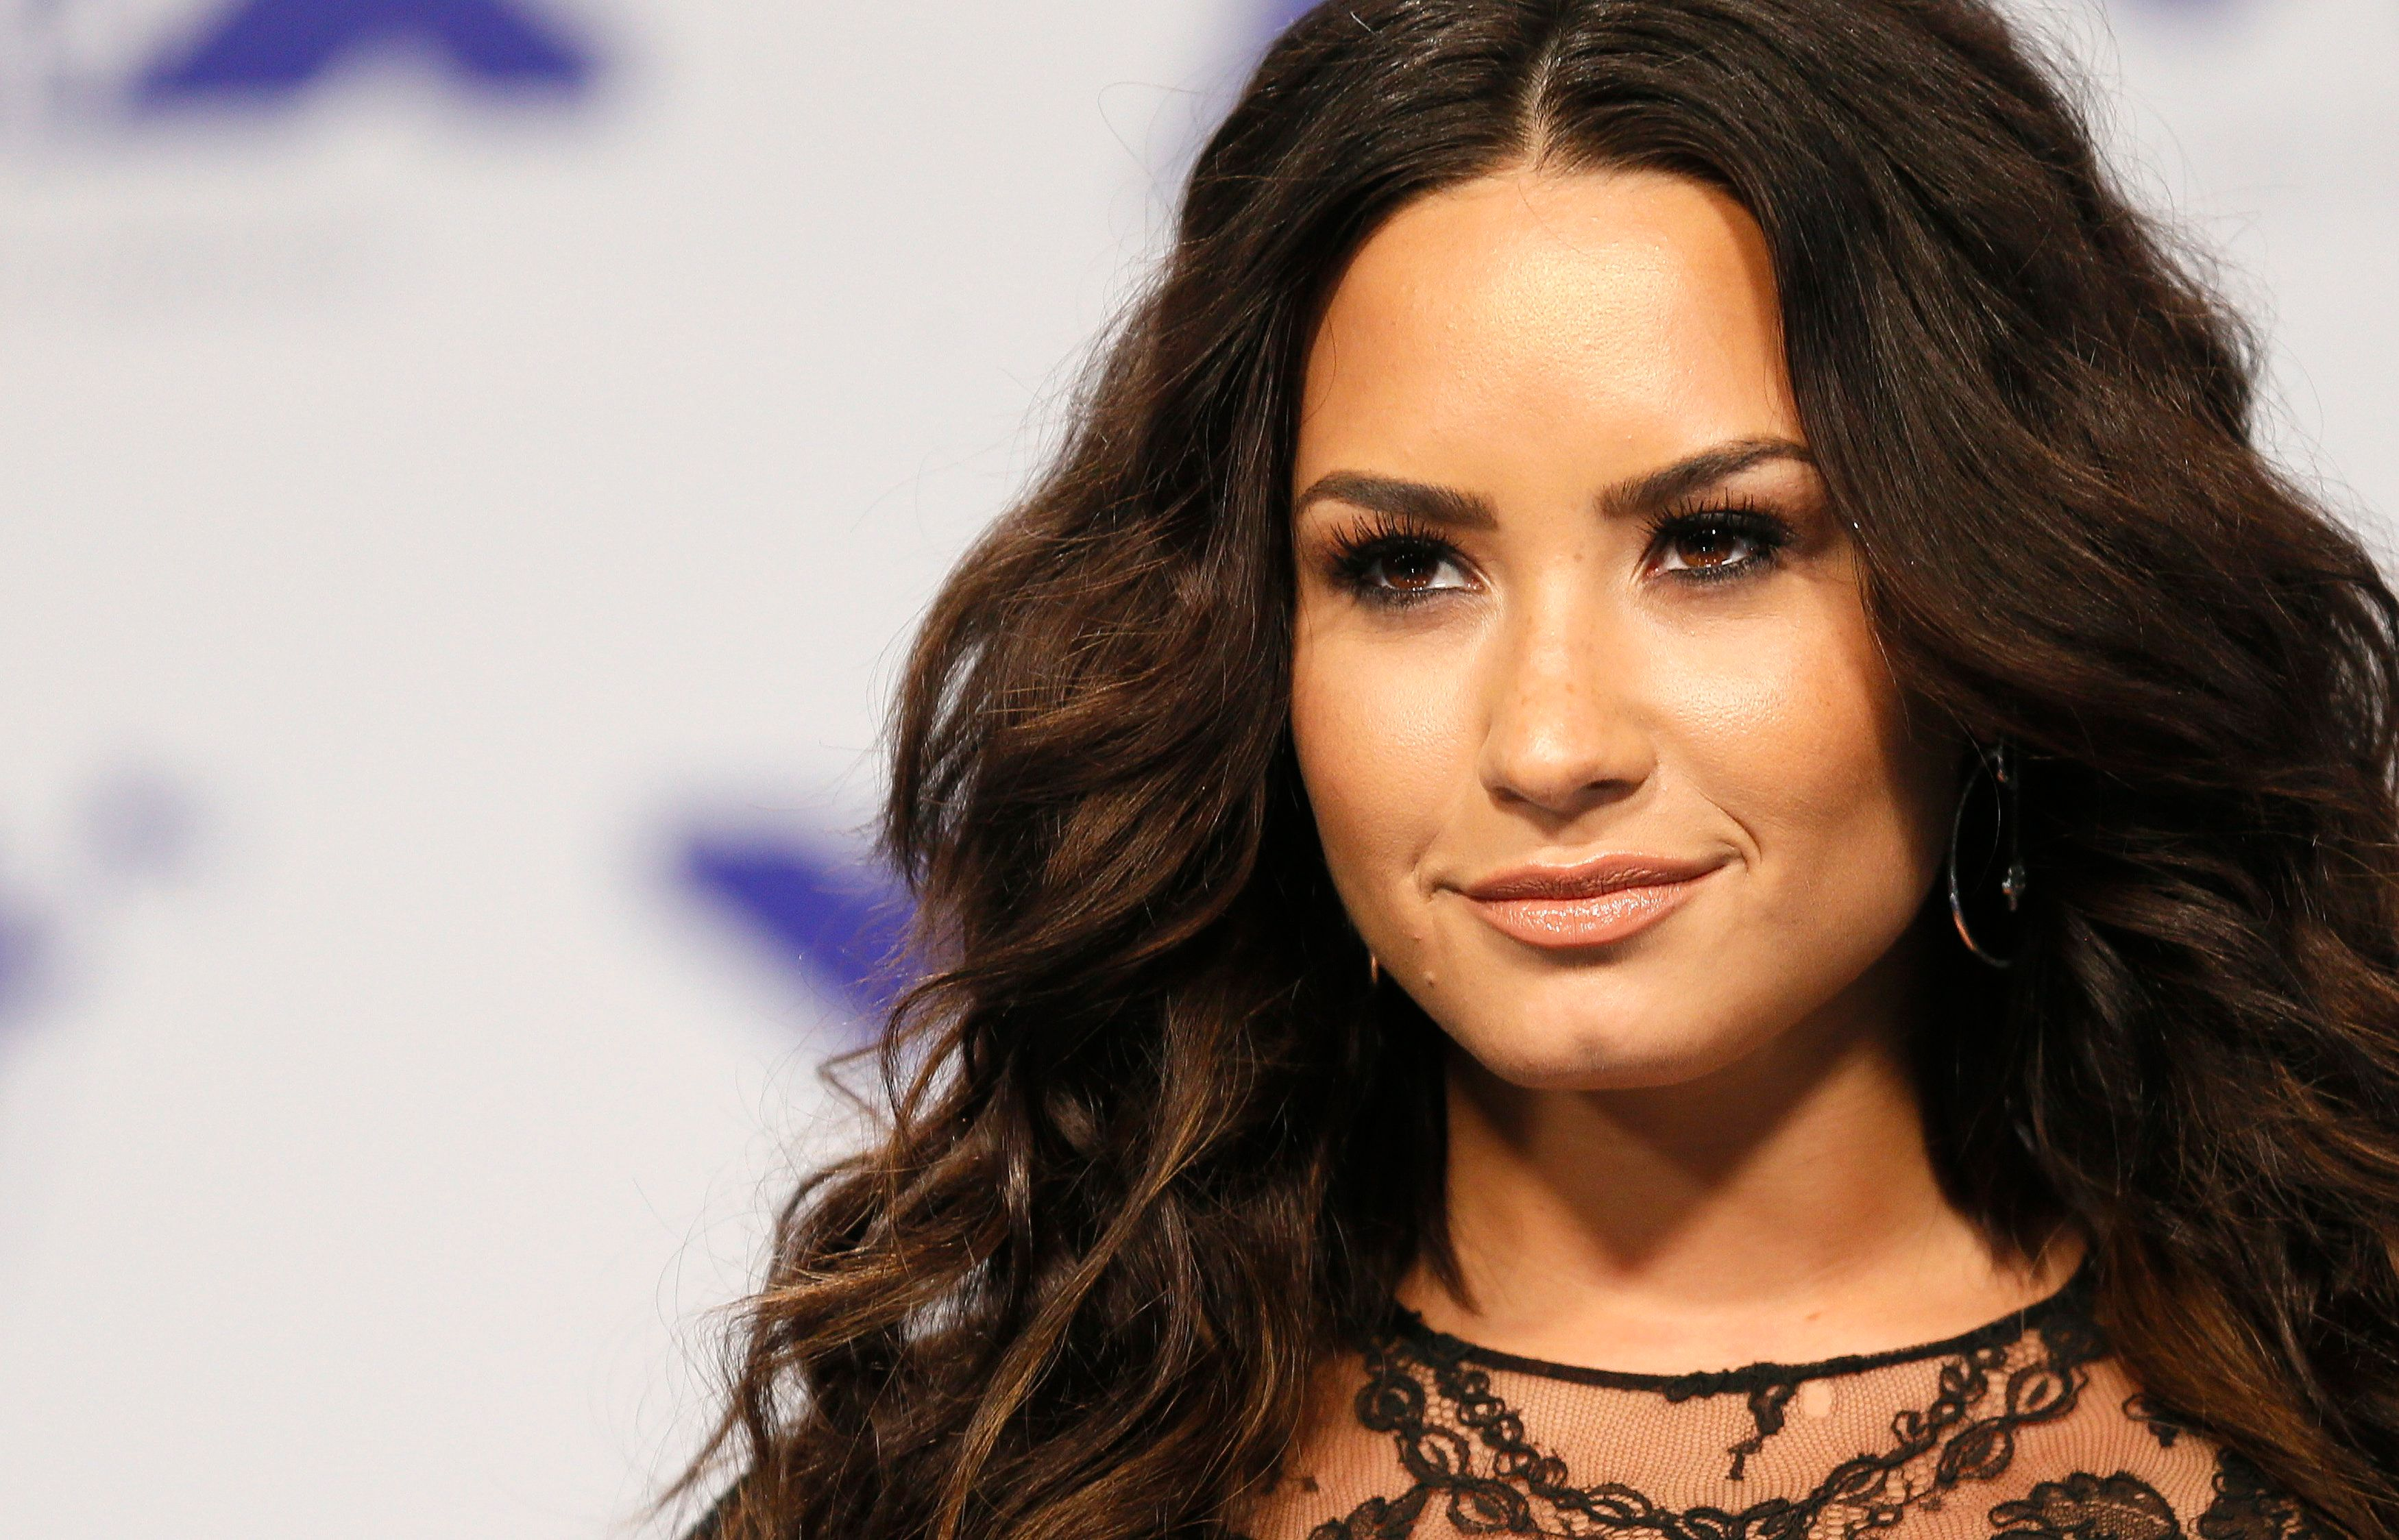 Demi Lovato's Statement Is A Reminder We Need To Be Honest About